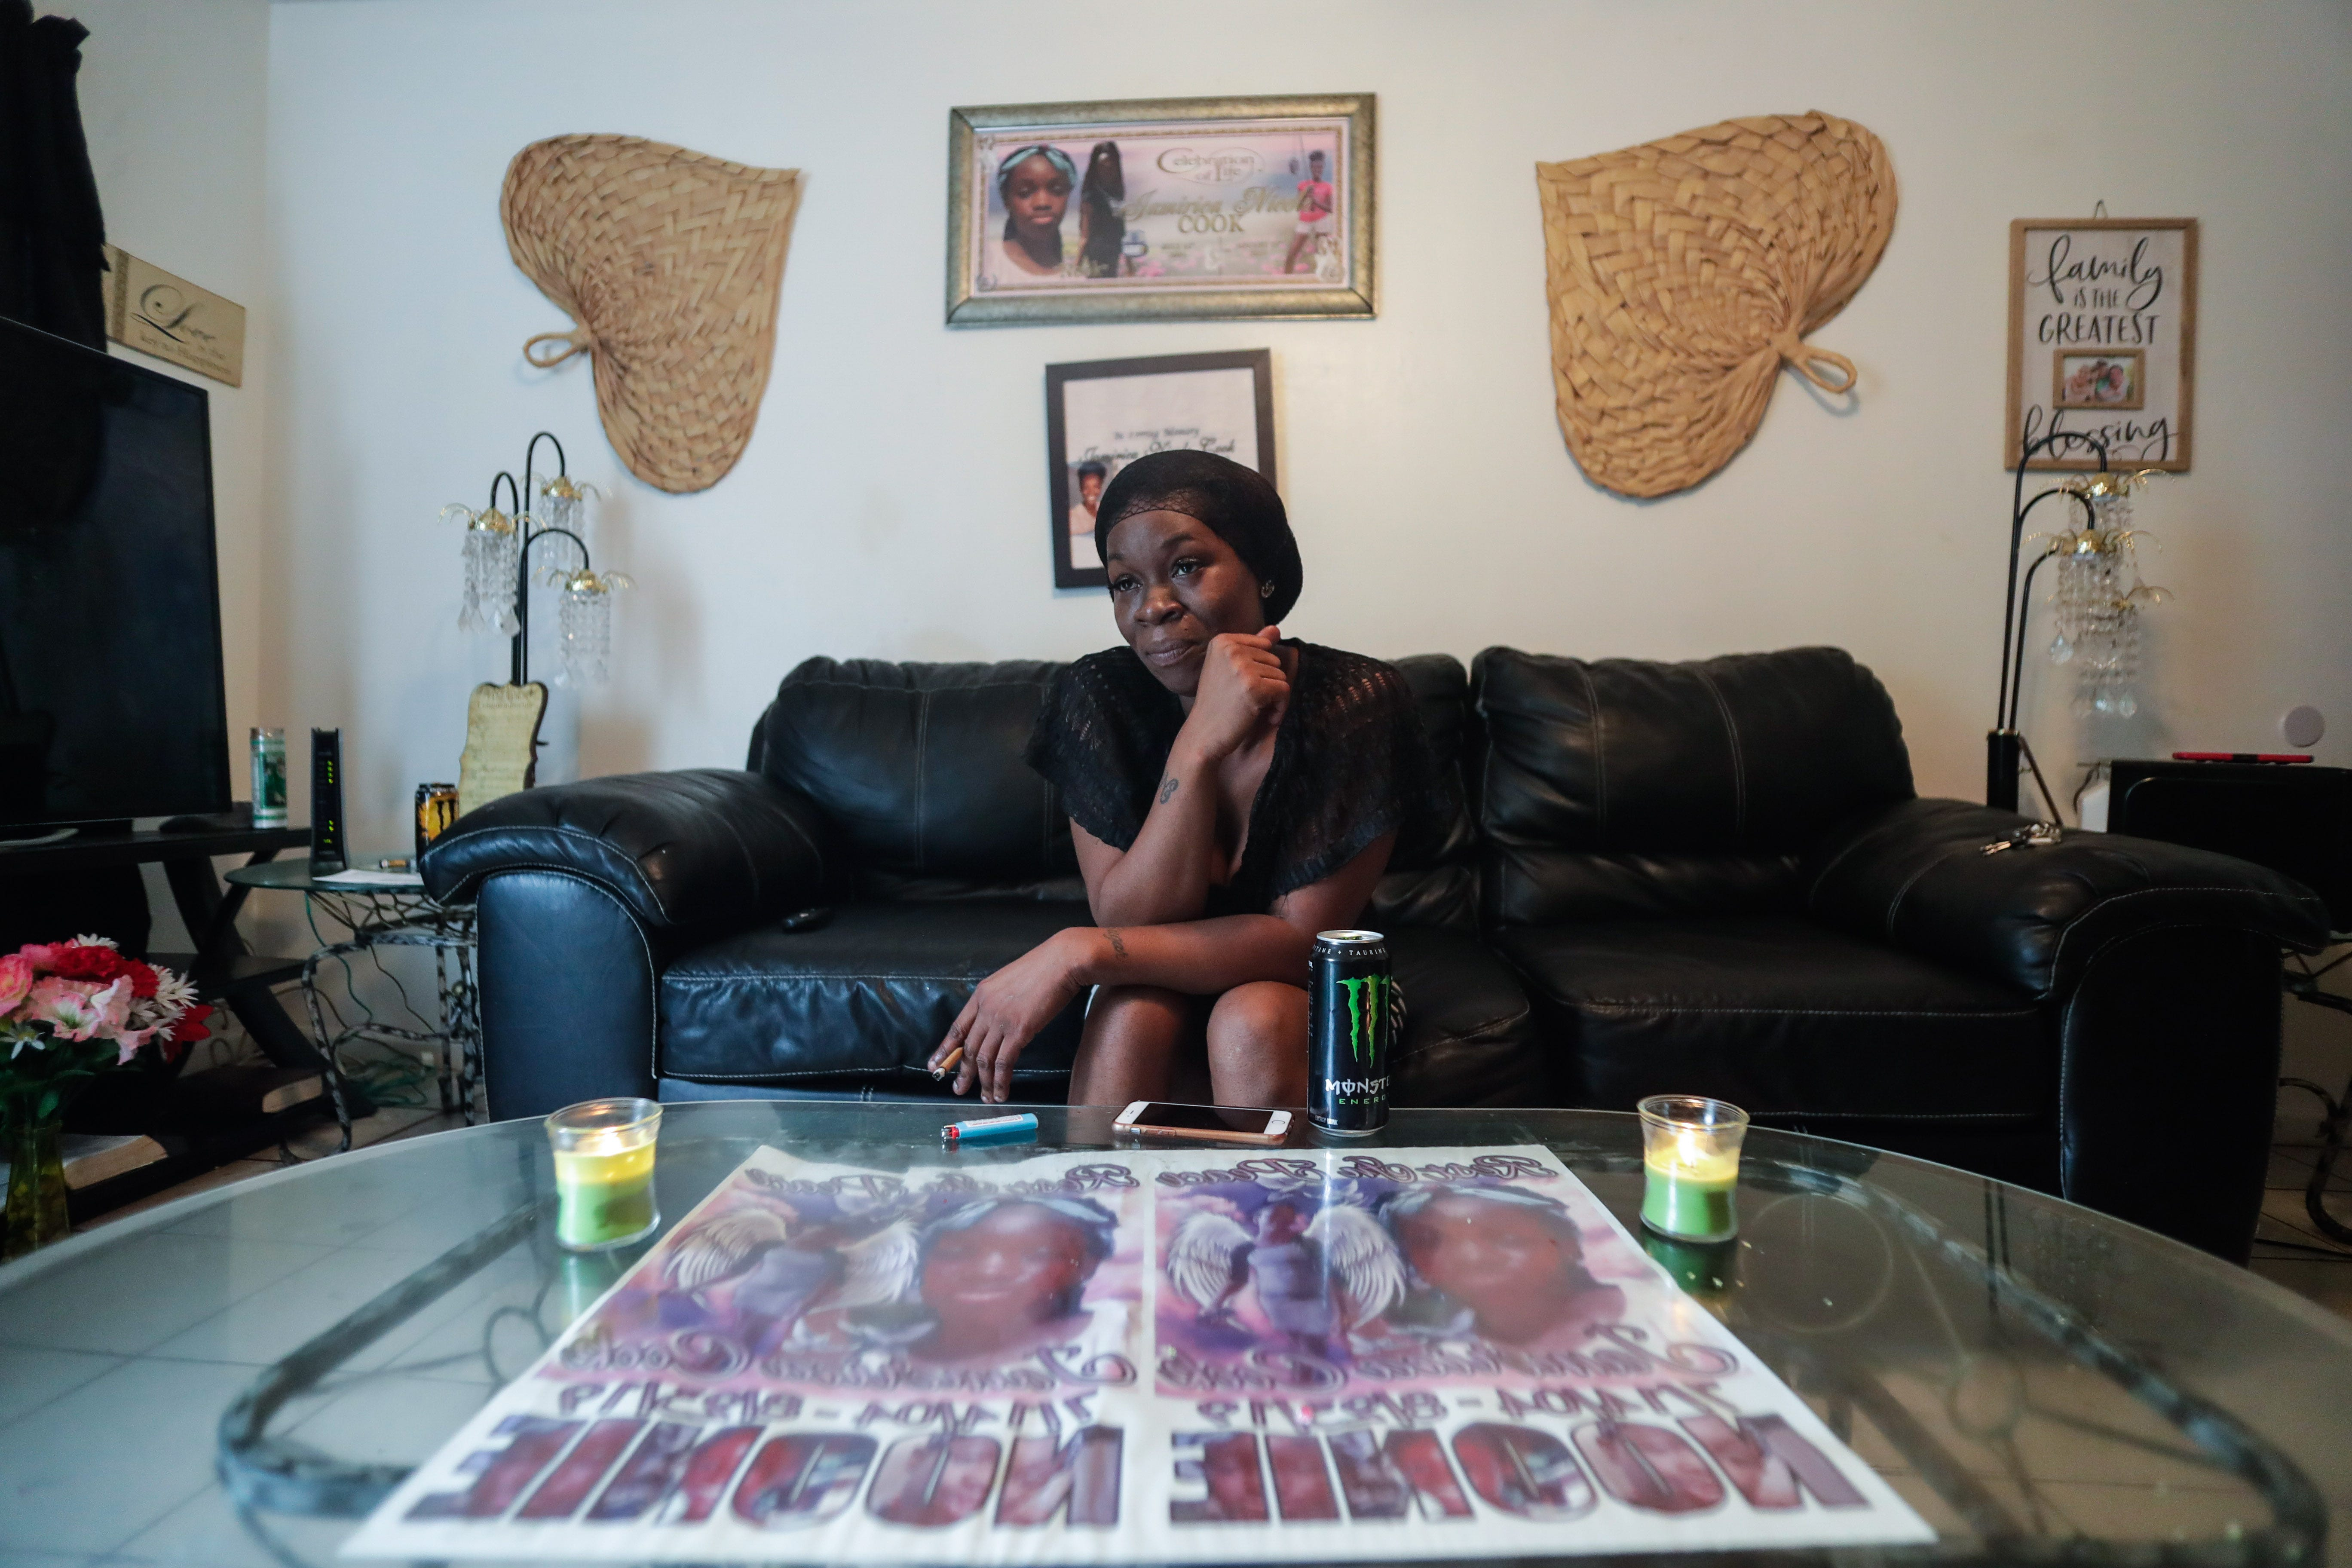 """Koquisha Cook, 36, sits in her living room as she shares fond memories of her daughter Jamirica """"Noonie"""" Cook, 15, who was shot and killed last year in her home in the Springfield Apartment complex. Photographs and tributes to Noonie decorate Cook's home."""